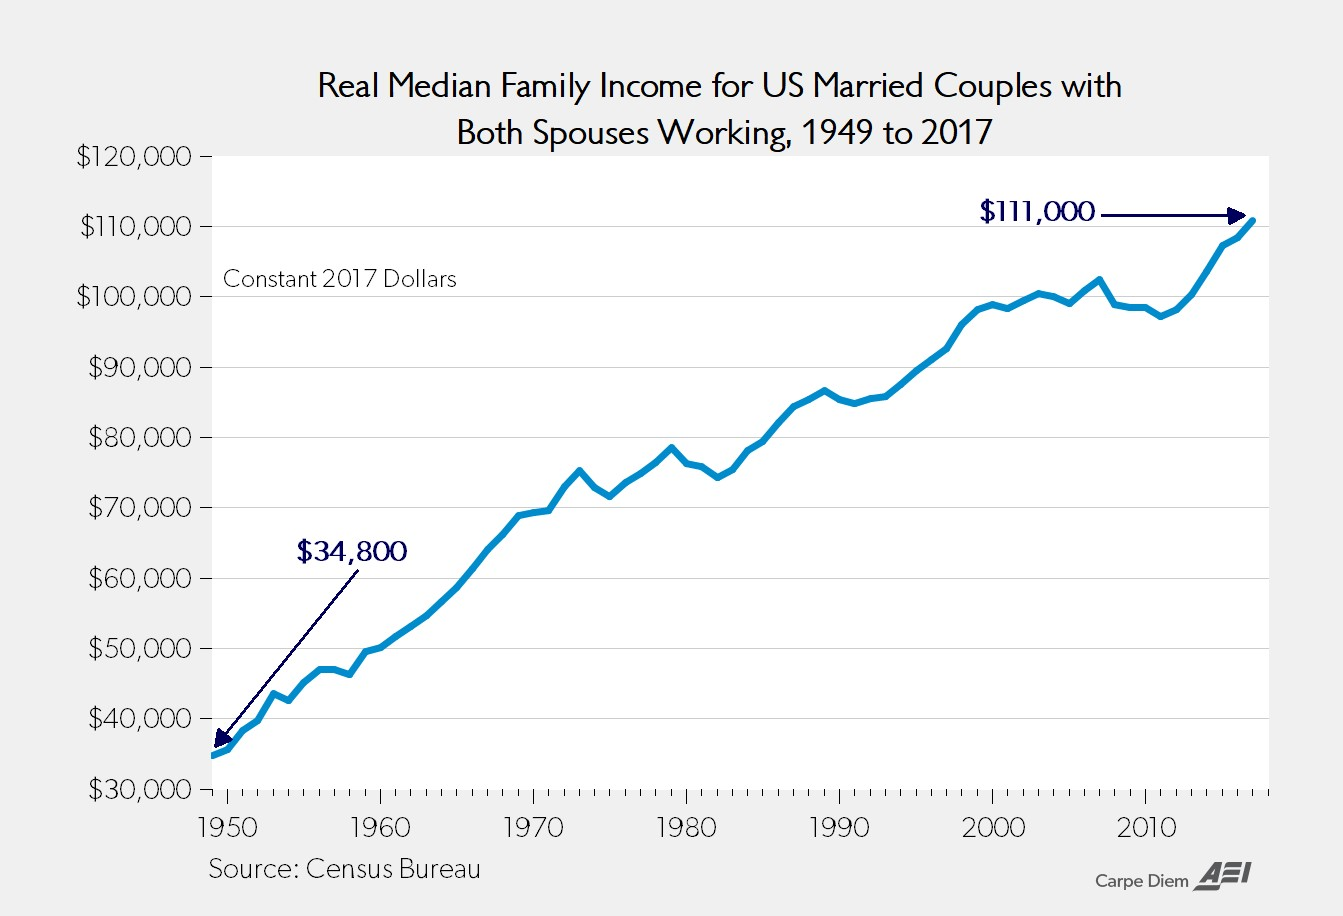 Real Media Family Income For US Married Couples With Both Spouses Working, 1949 to 2017. AEI.